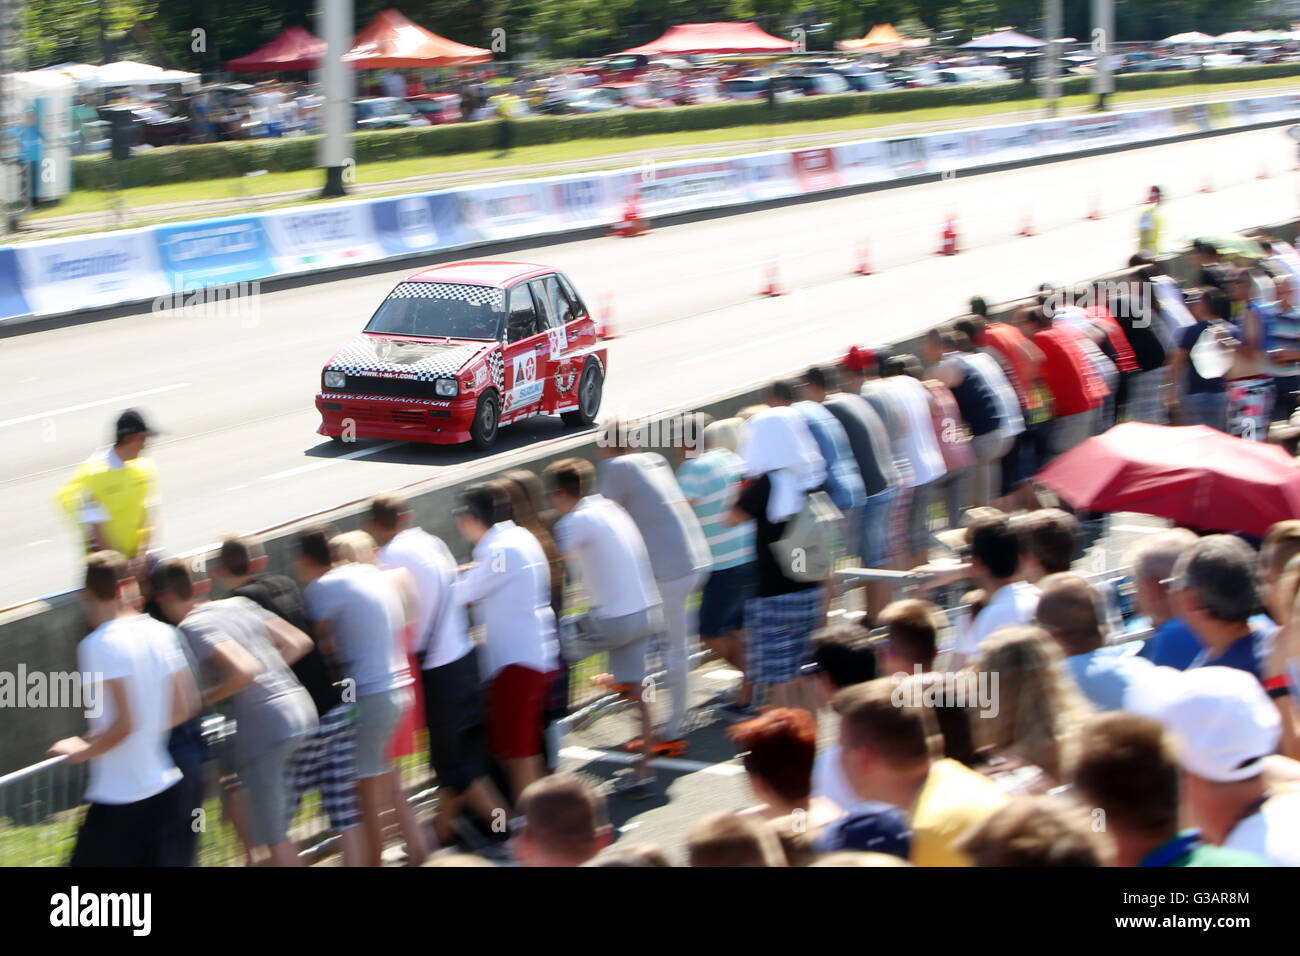 Suzuki Sport Car Is Racing At Fast And Furious Street Race At Avenue Stock Photo Alamy